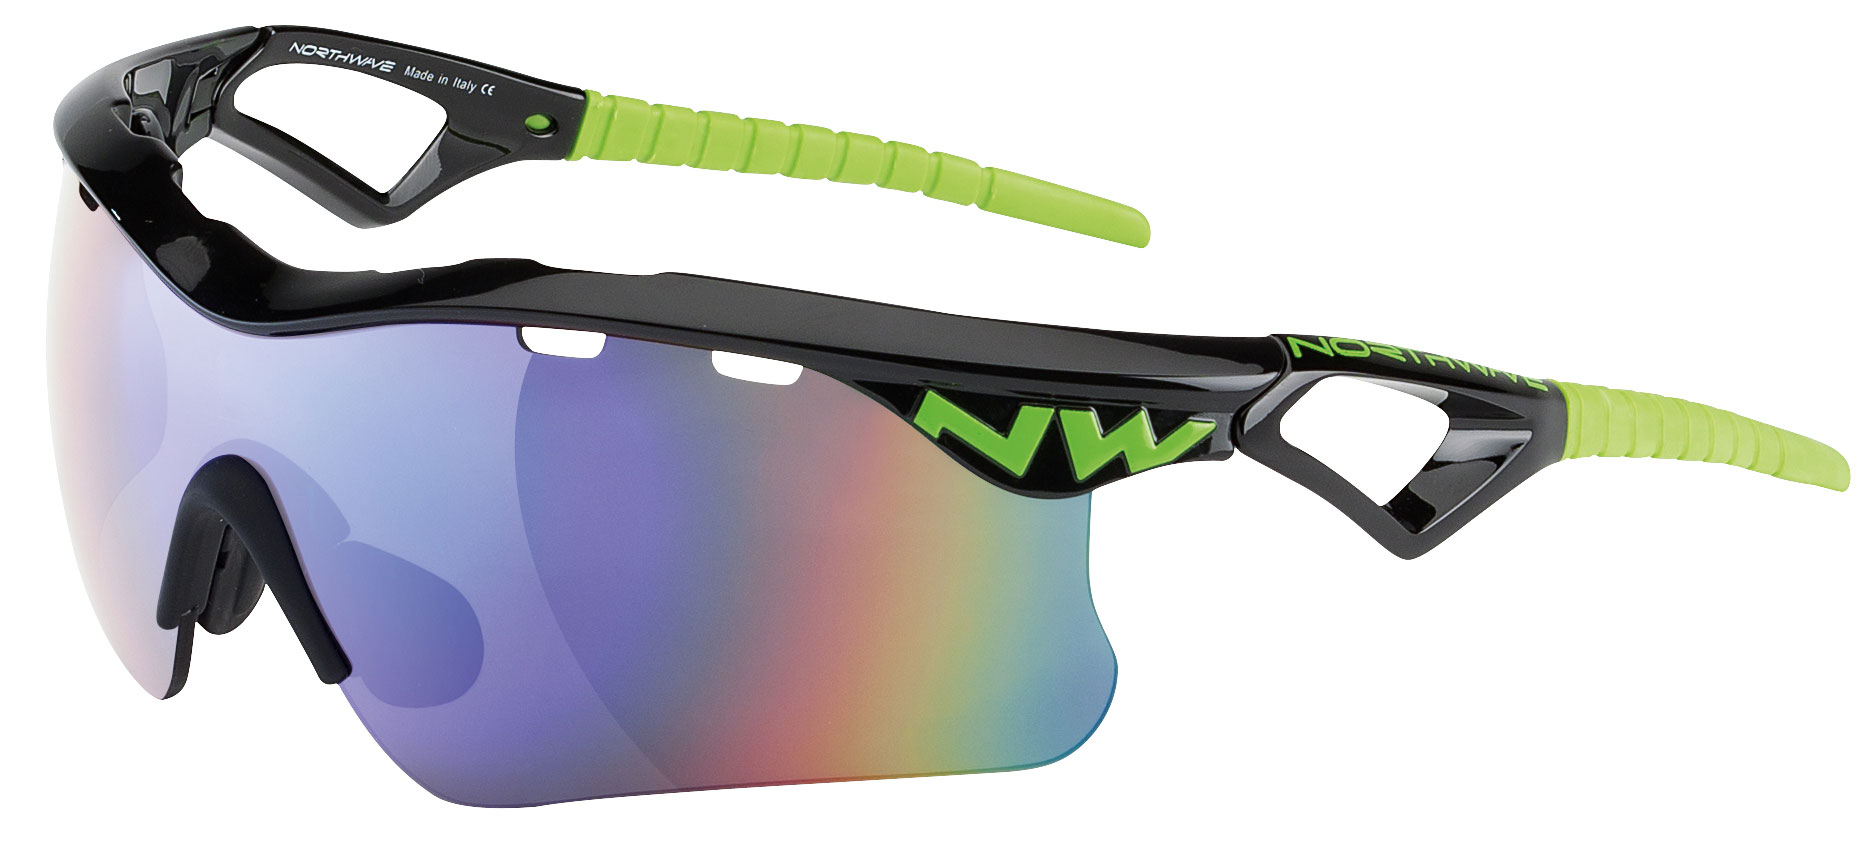 northwave - Steel Sunglasses